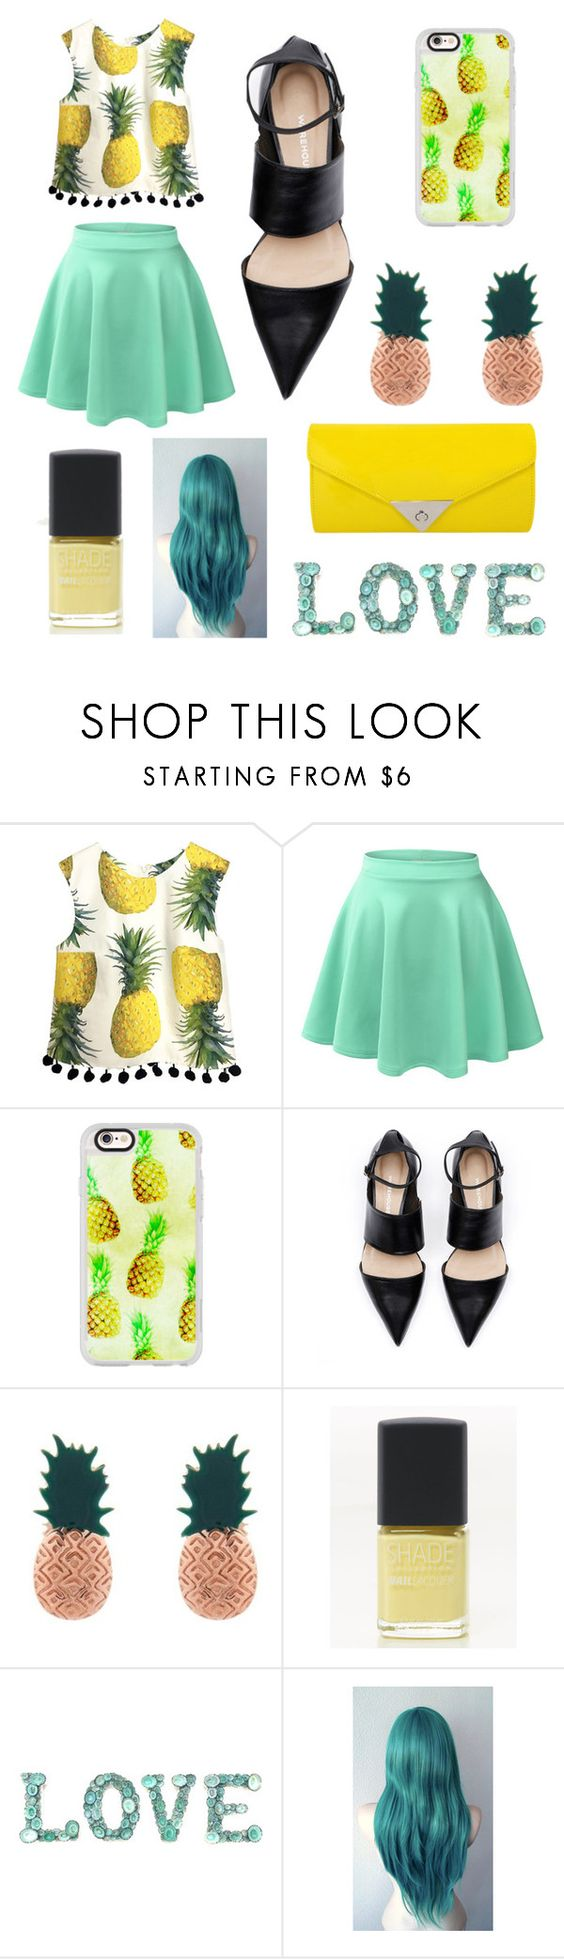 """""""Pinapple"""" by simonesaintjones13 ❤ liked on Polyvore featuring LE3NO, Casetify, Aamaya by priyanka, Lane Bryant and JNB"""